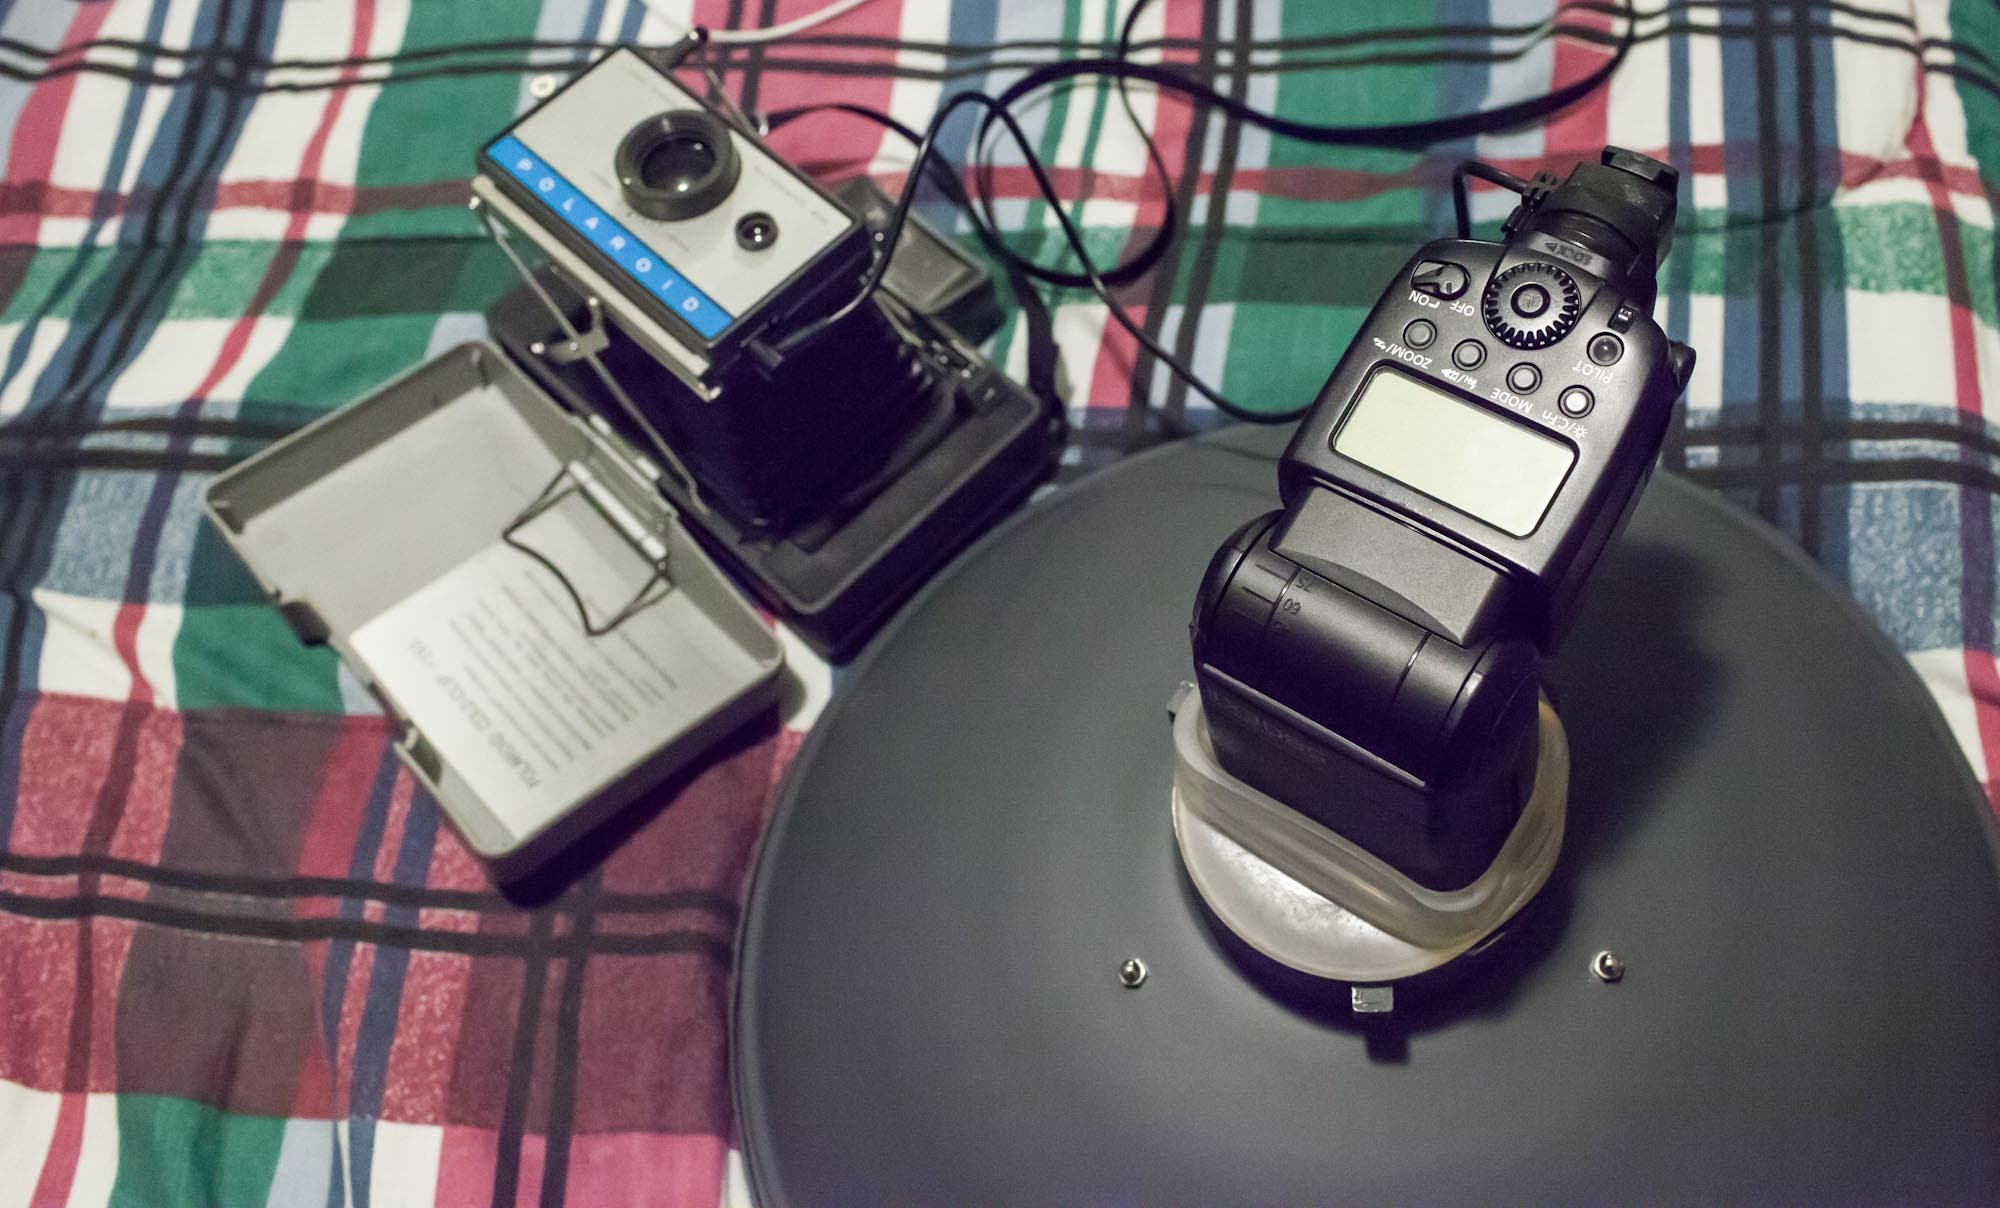 Useful Photography Tip #12: Use an Old Polaroid Land Camera With Your Modern Speedlite Flash